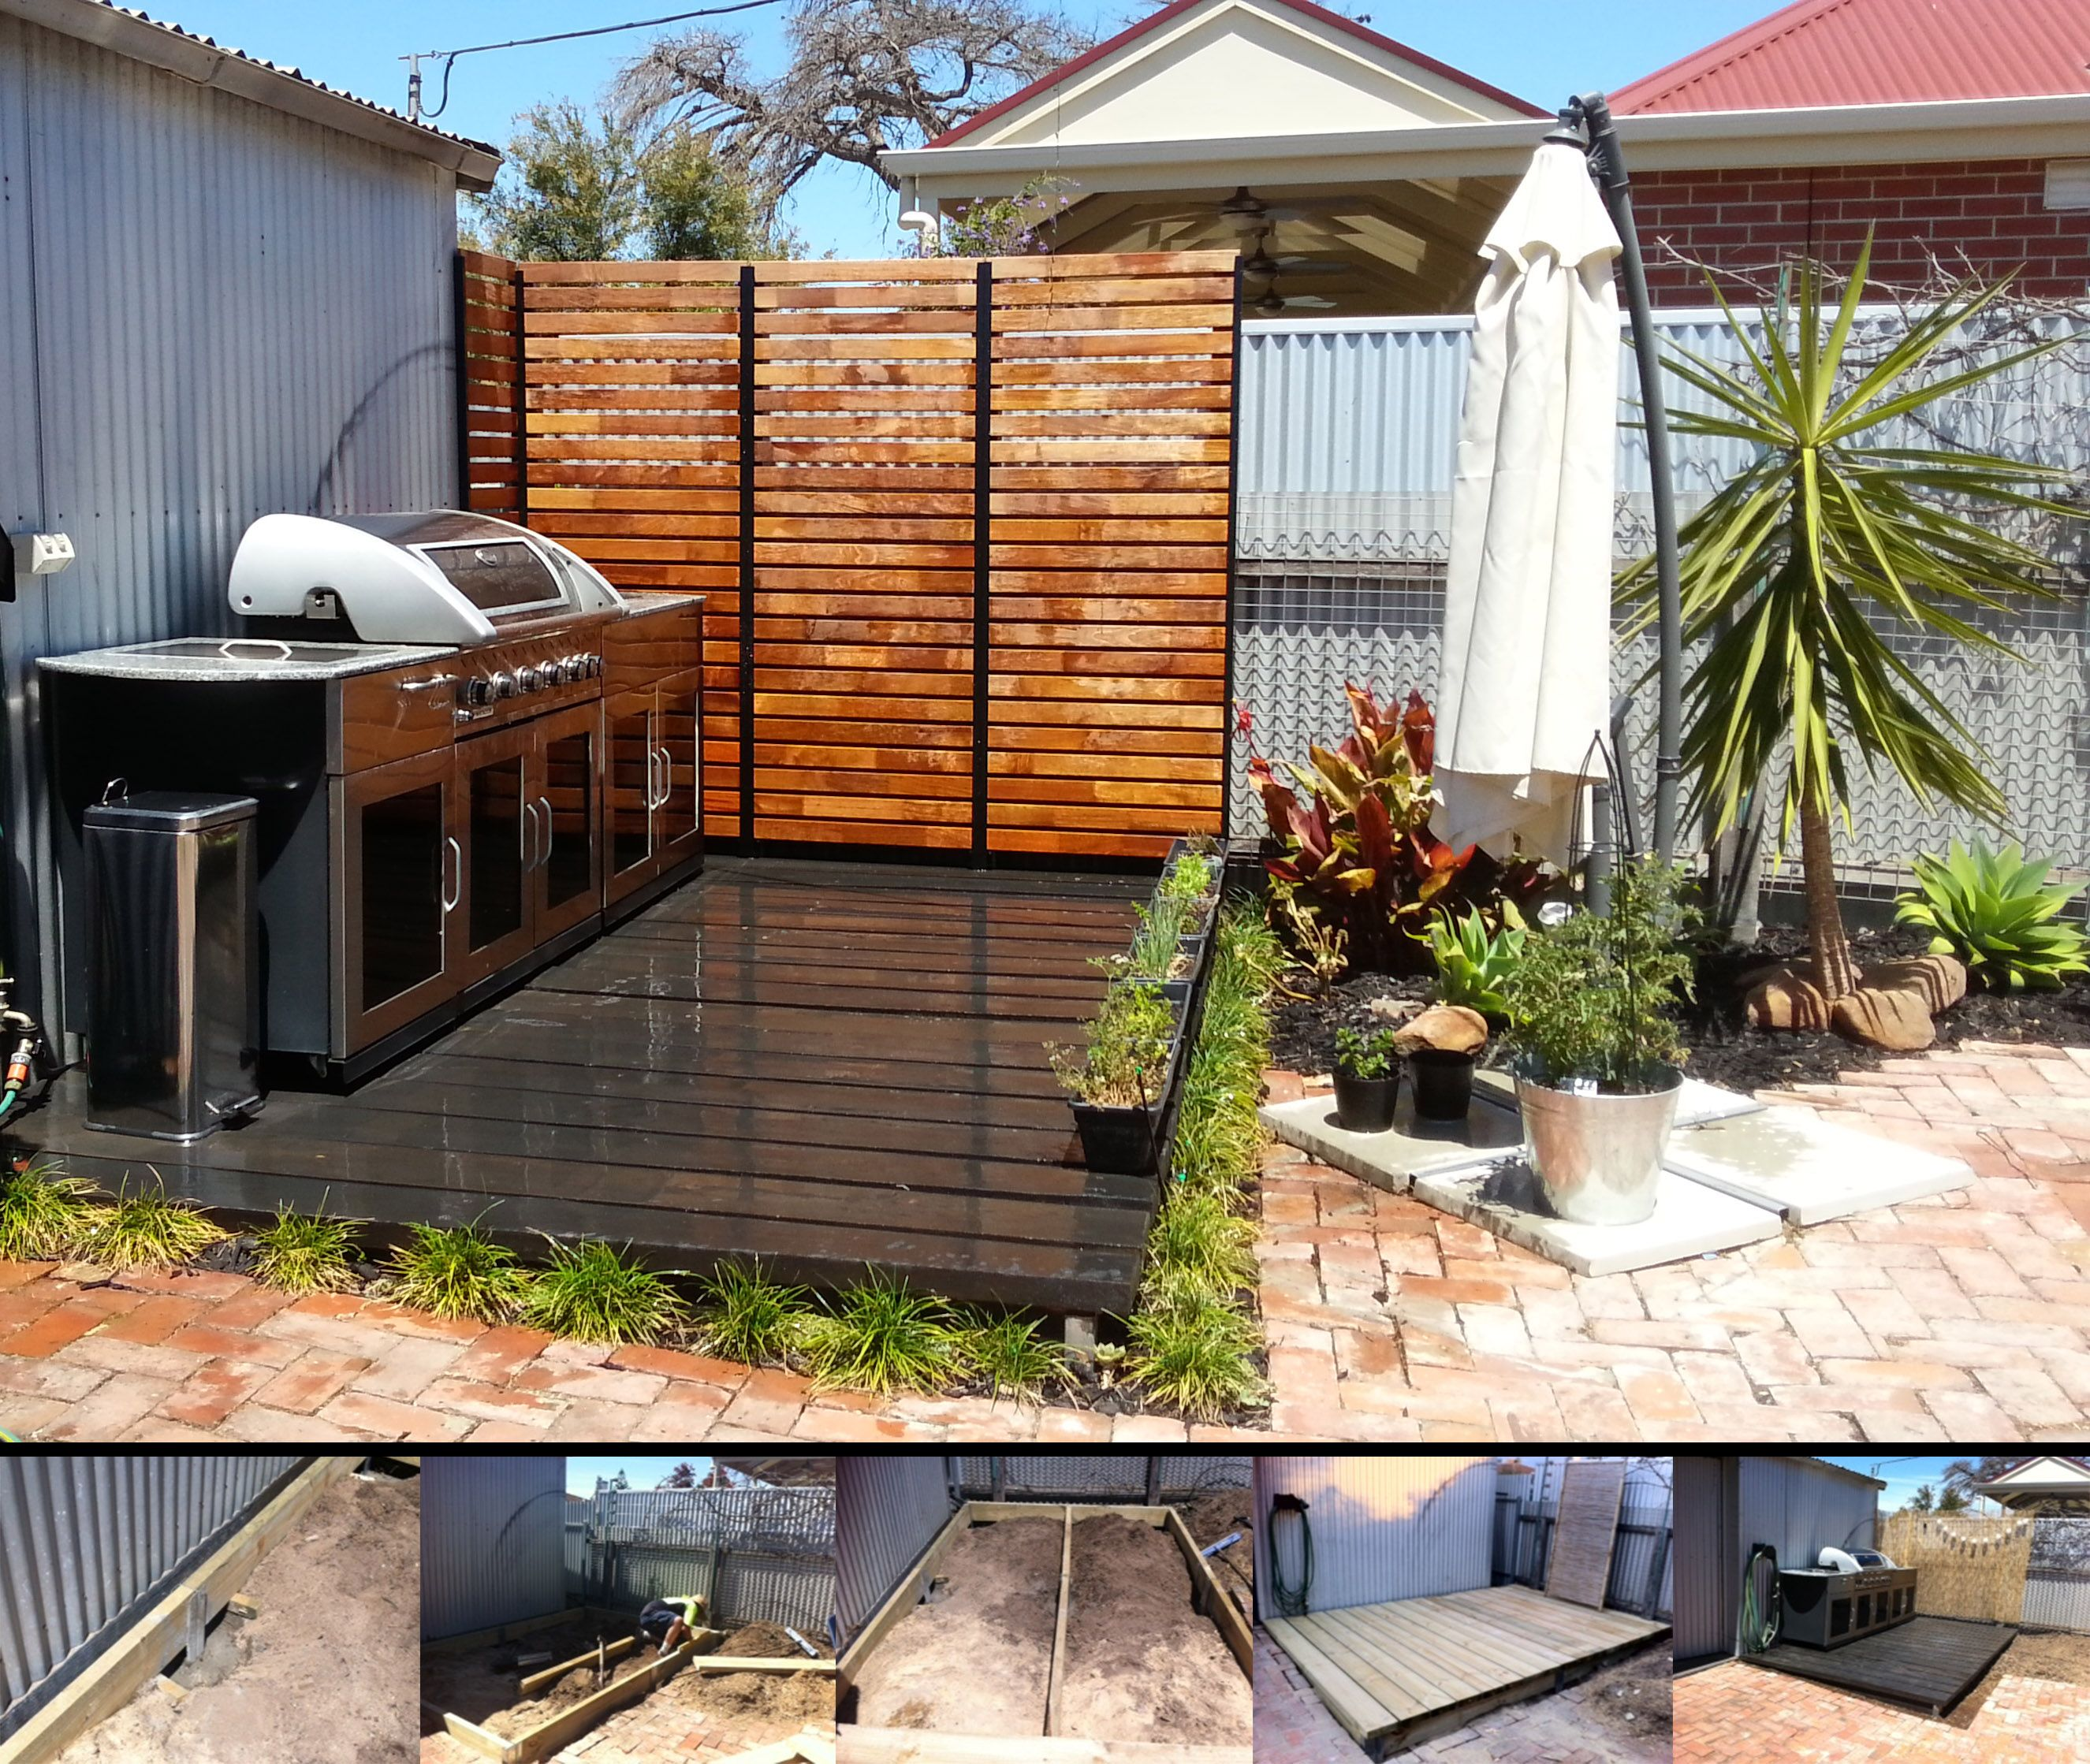 Brentons New Deck Uses Retain It (Single Height) To Secure The